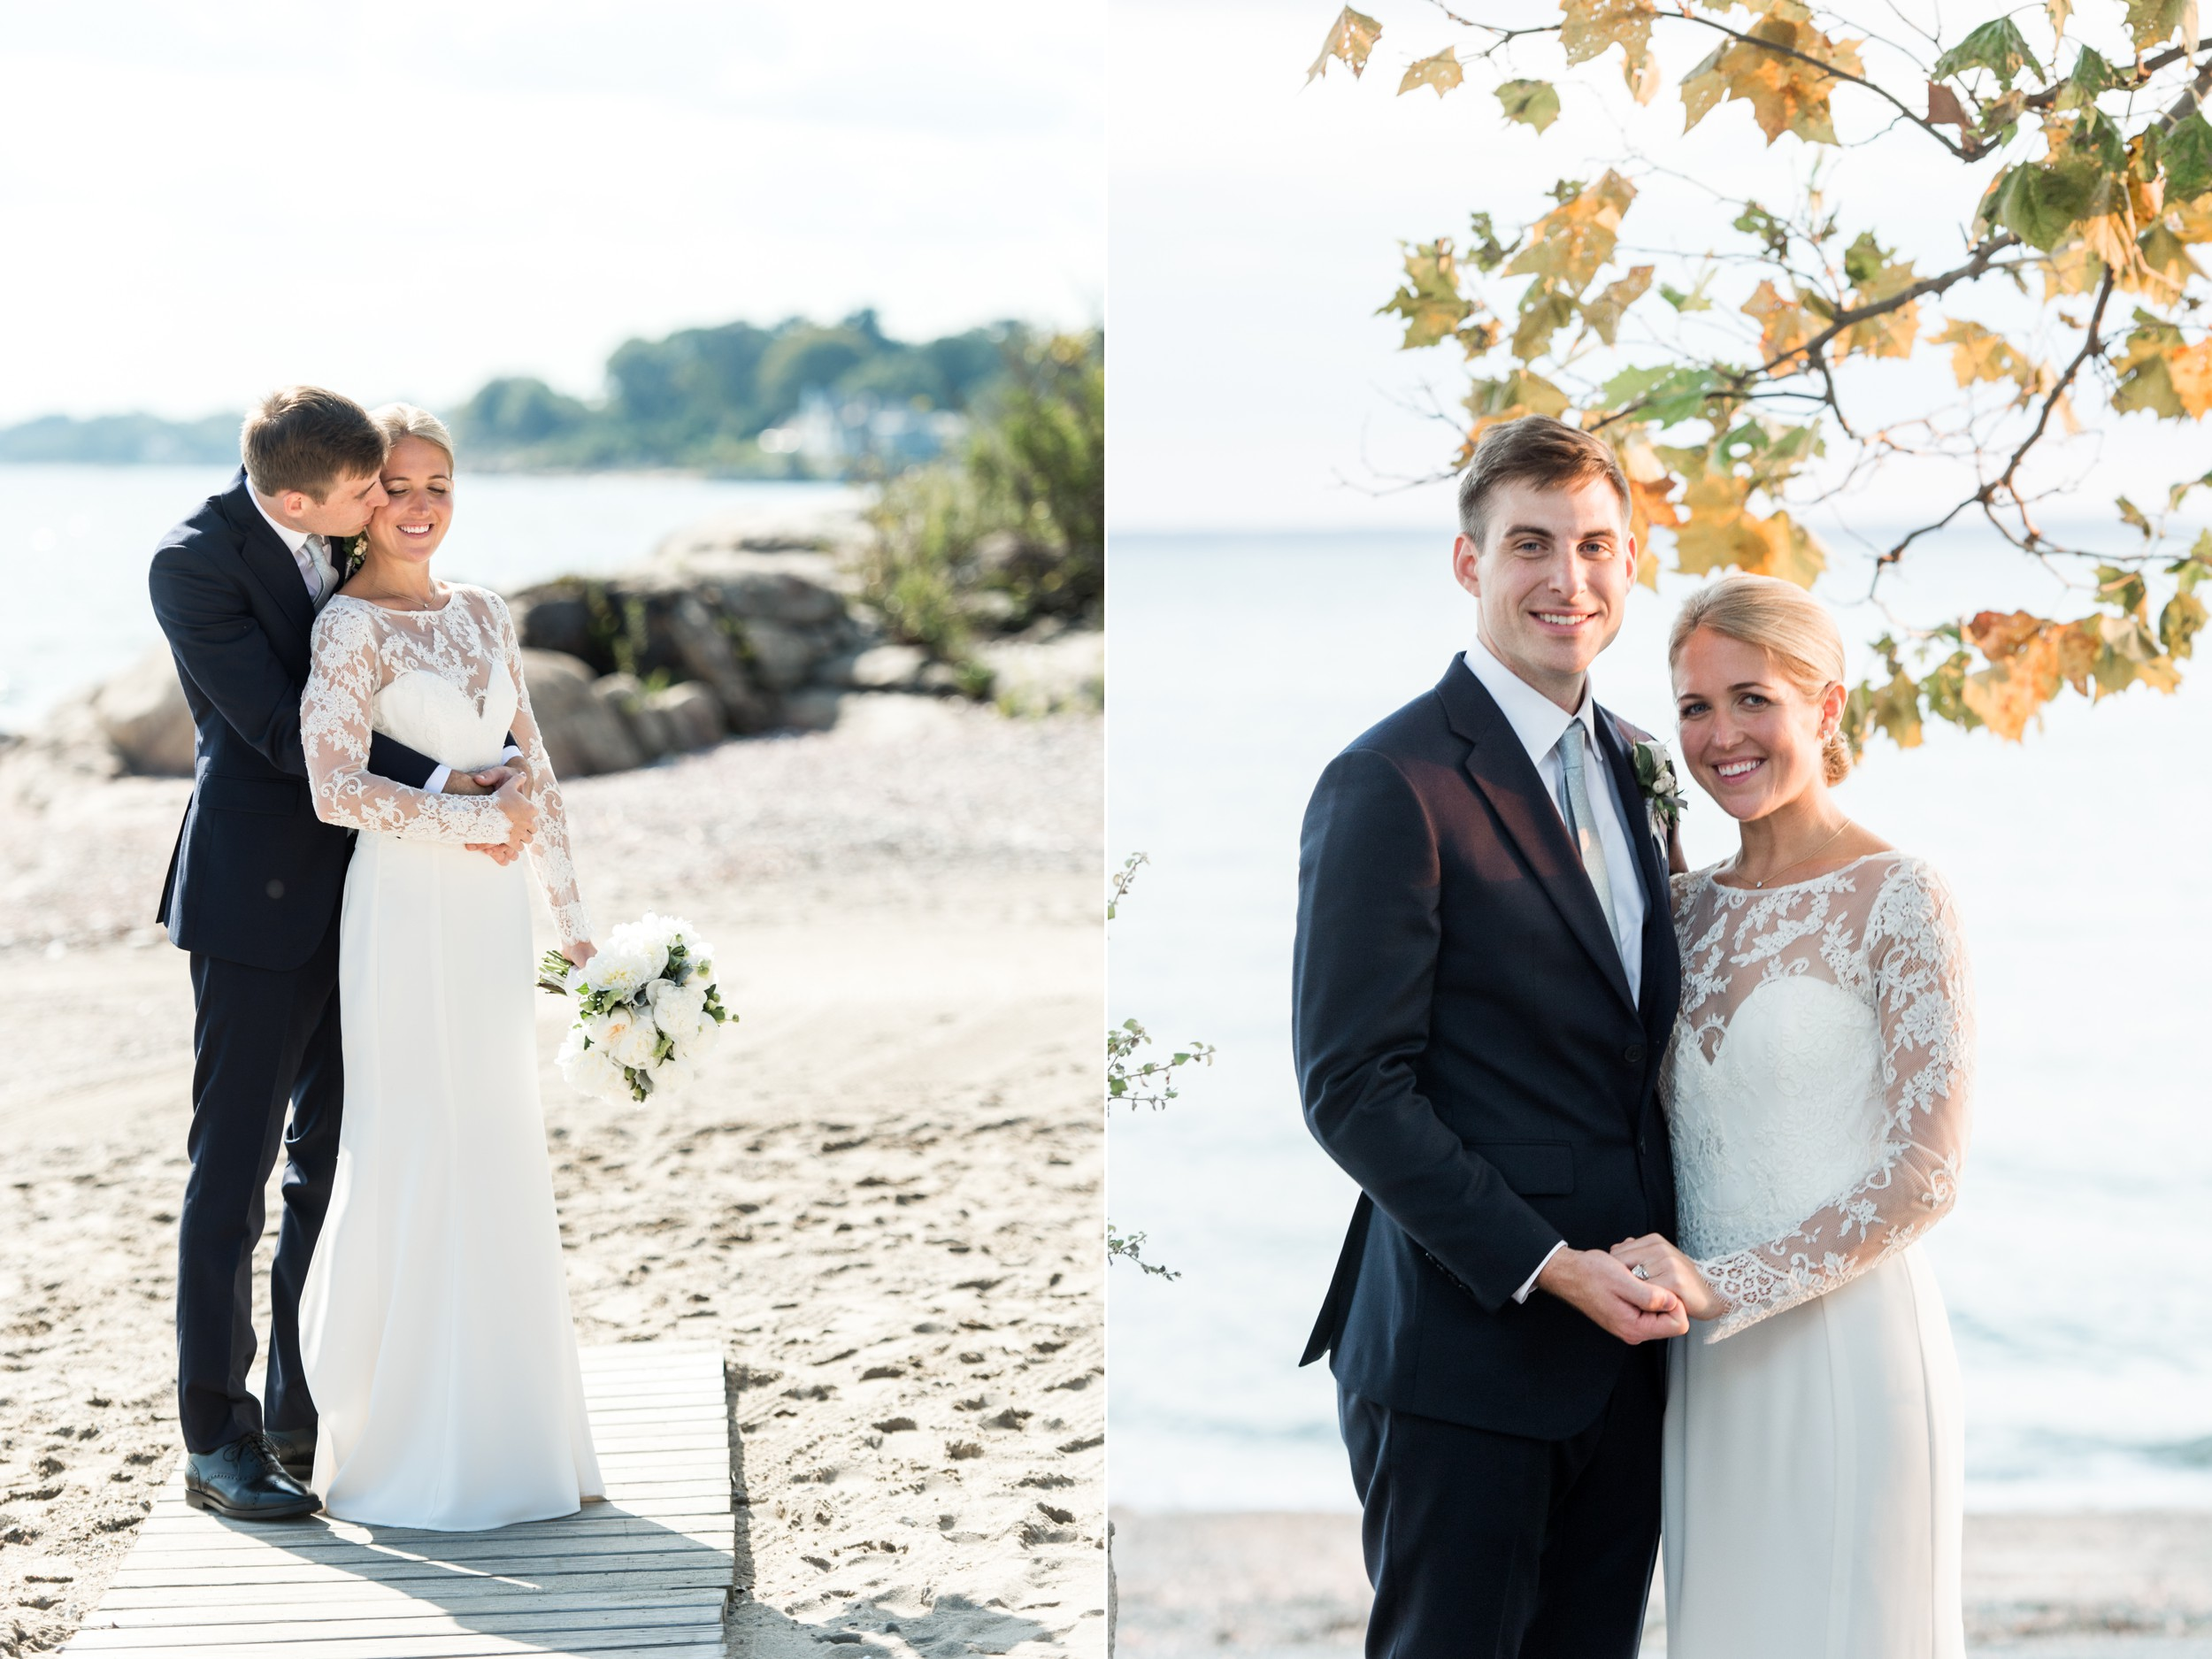 Wee Burn Beach Club Wedding Darien CT Bride and Groom Portraits on the Beach Lace Dress Navy Suit and White Florals